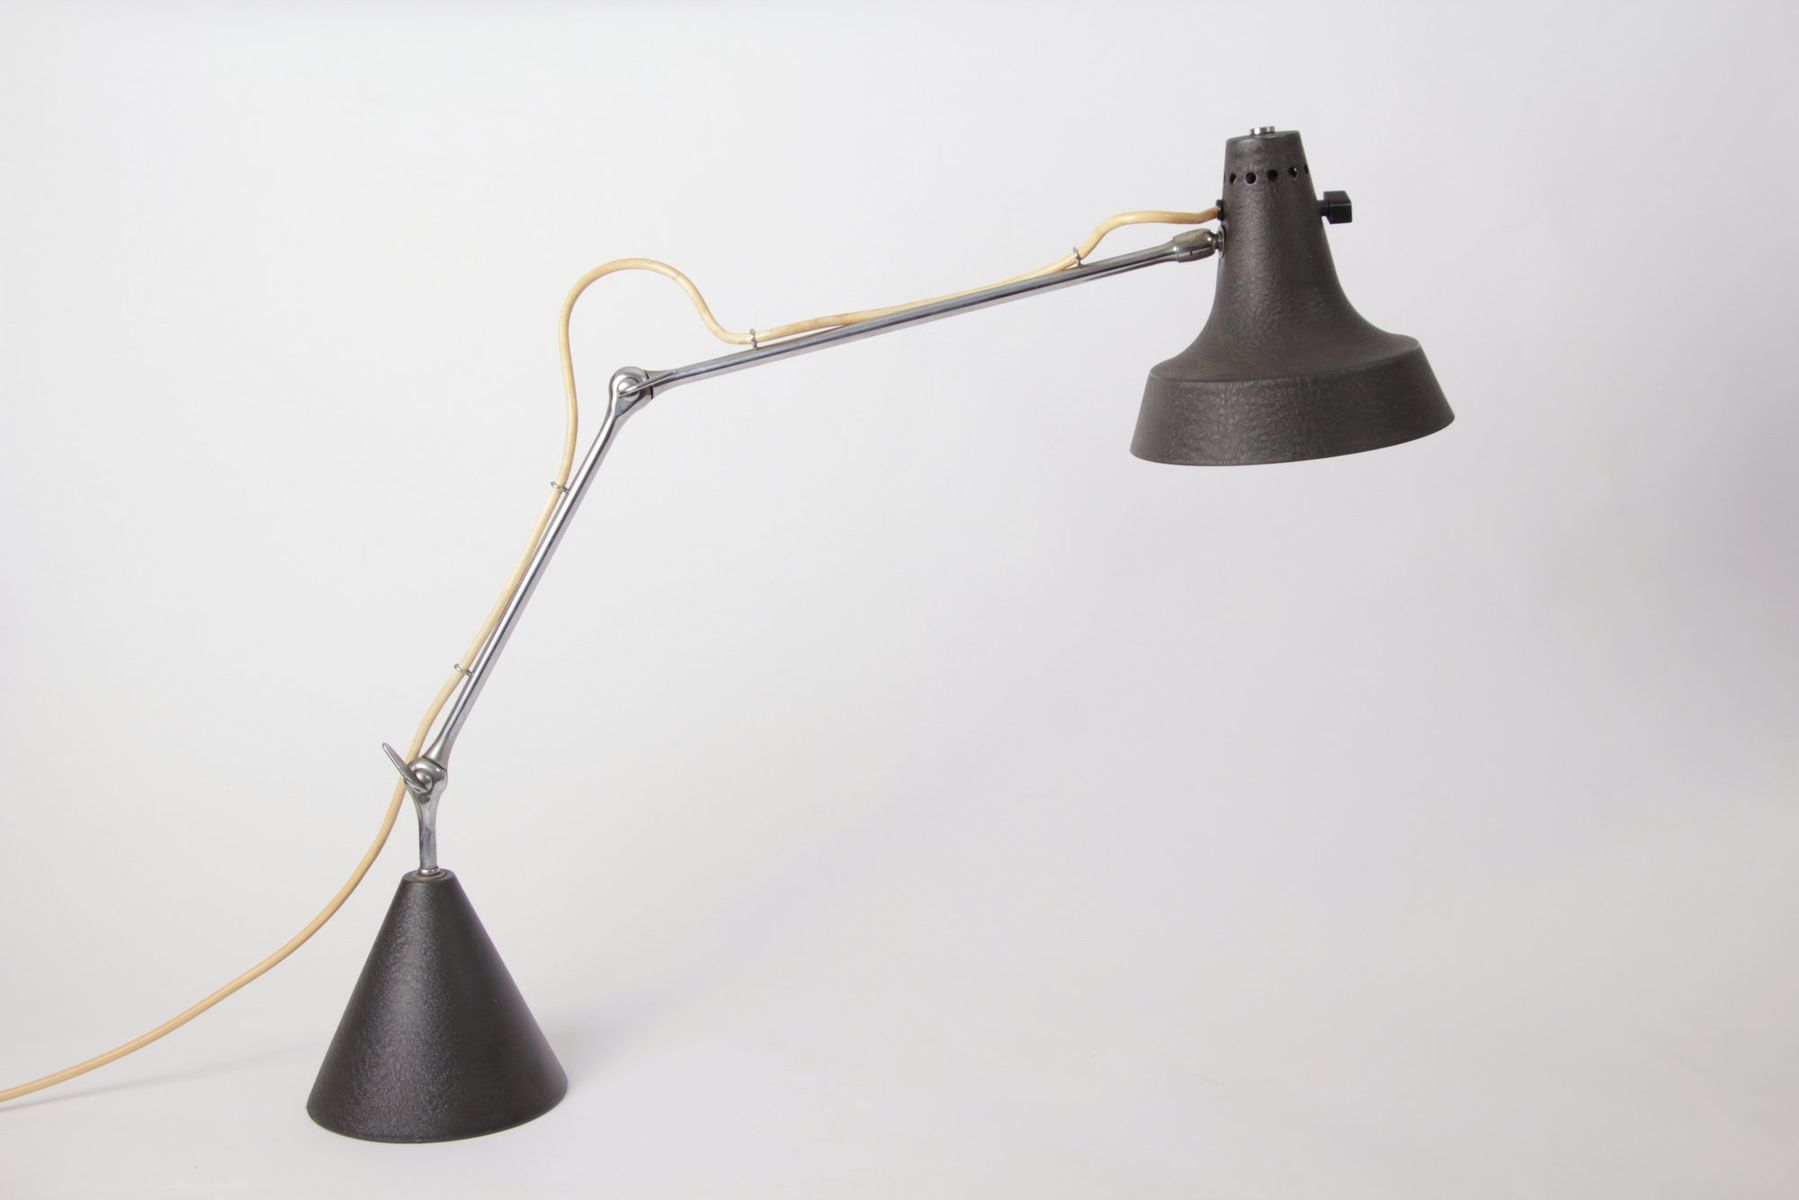 Vintage Black Lacquered Steel & Chrome Desk Lamp for sale at Pamono